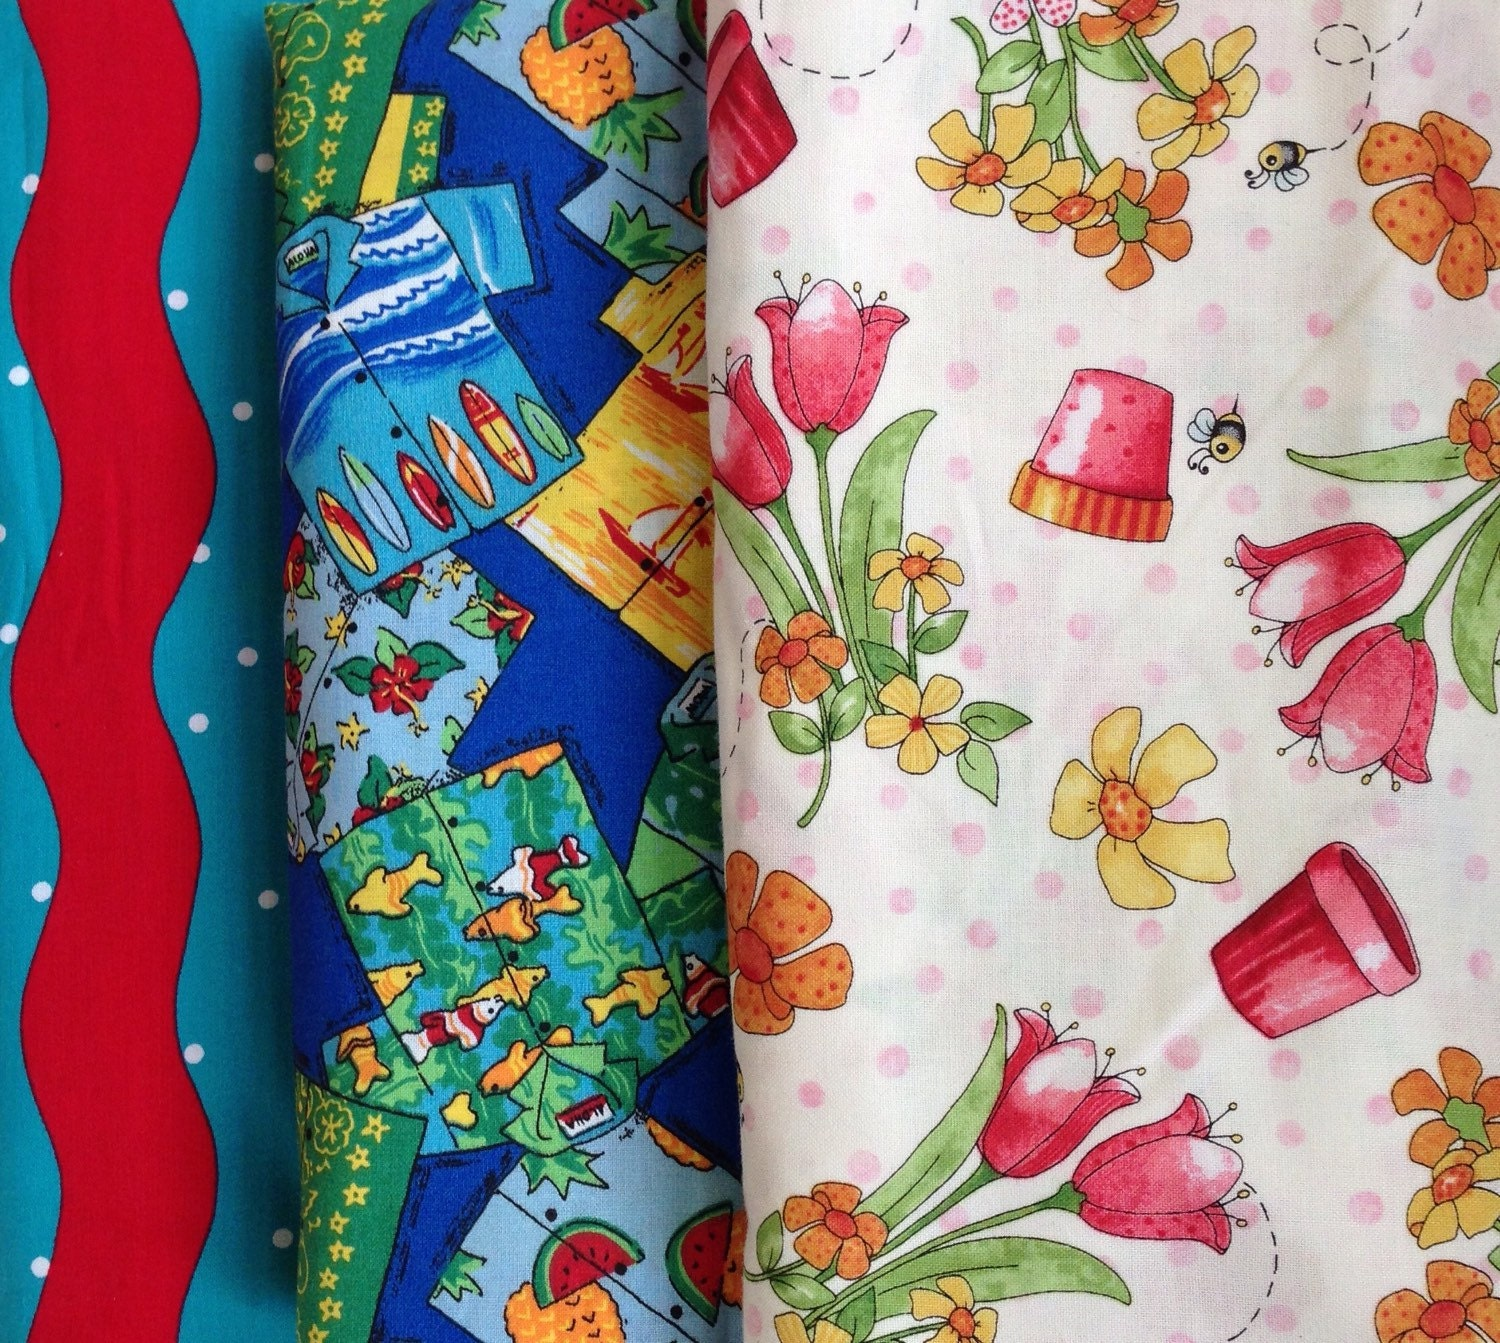 Sale fabric by the yard by scire4 on etsy for Cloth for sale by the yard